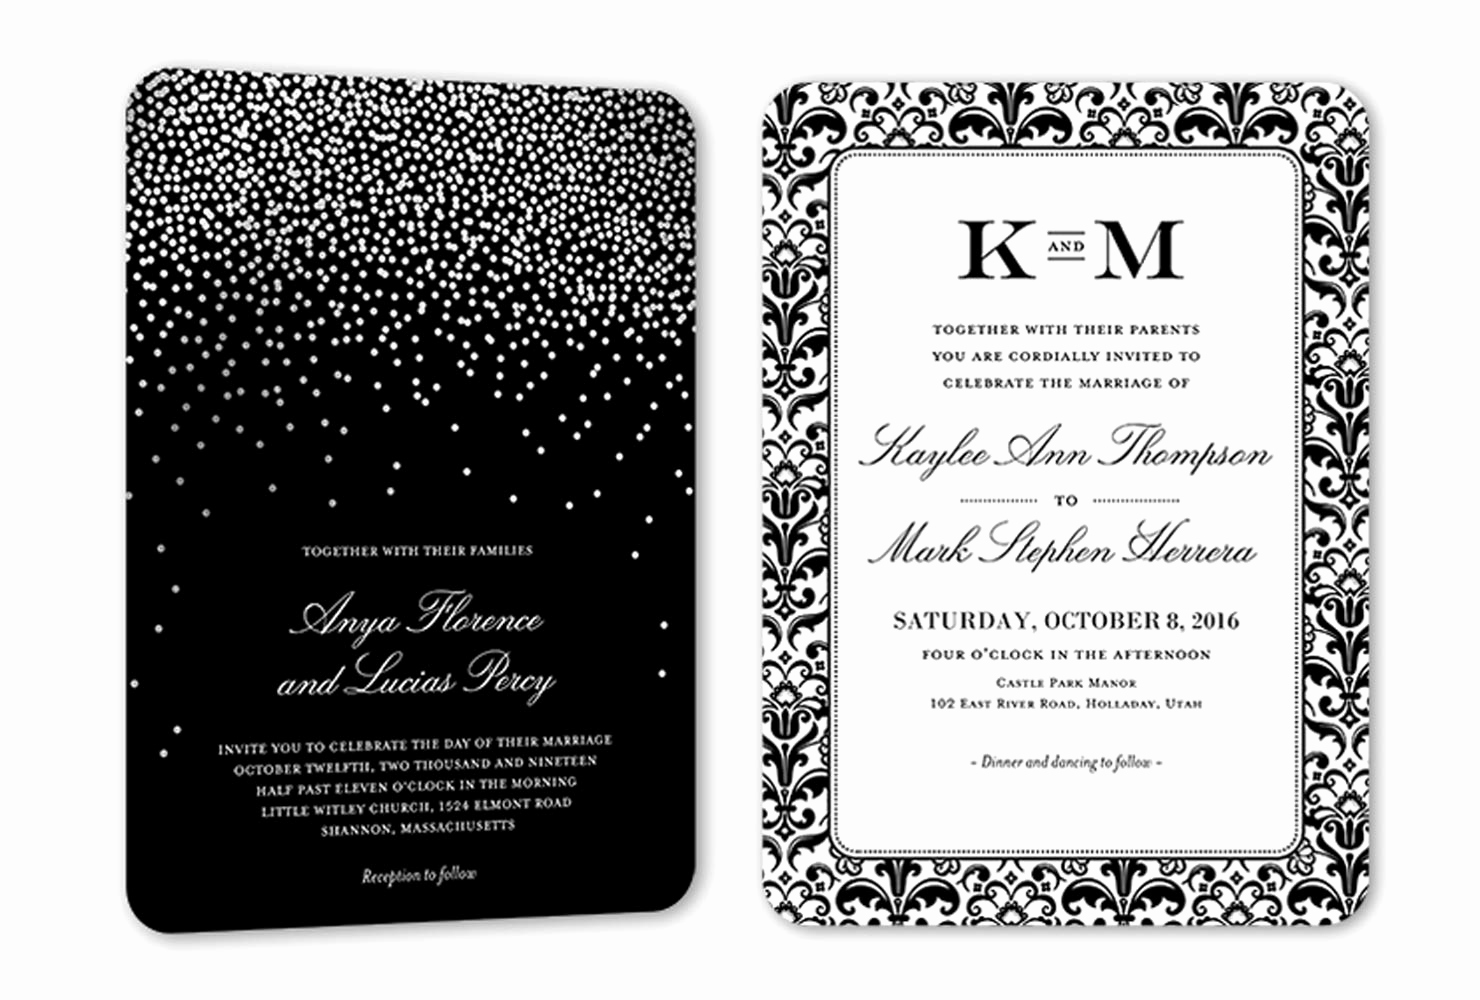 Formal Birthday Invitation Wording Lovely 35 Wedding Invitation Wording Examples 2019